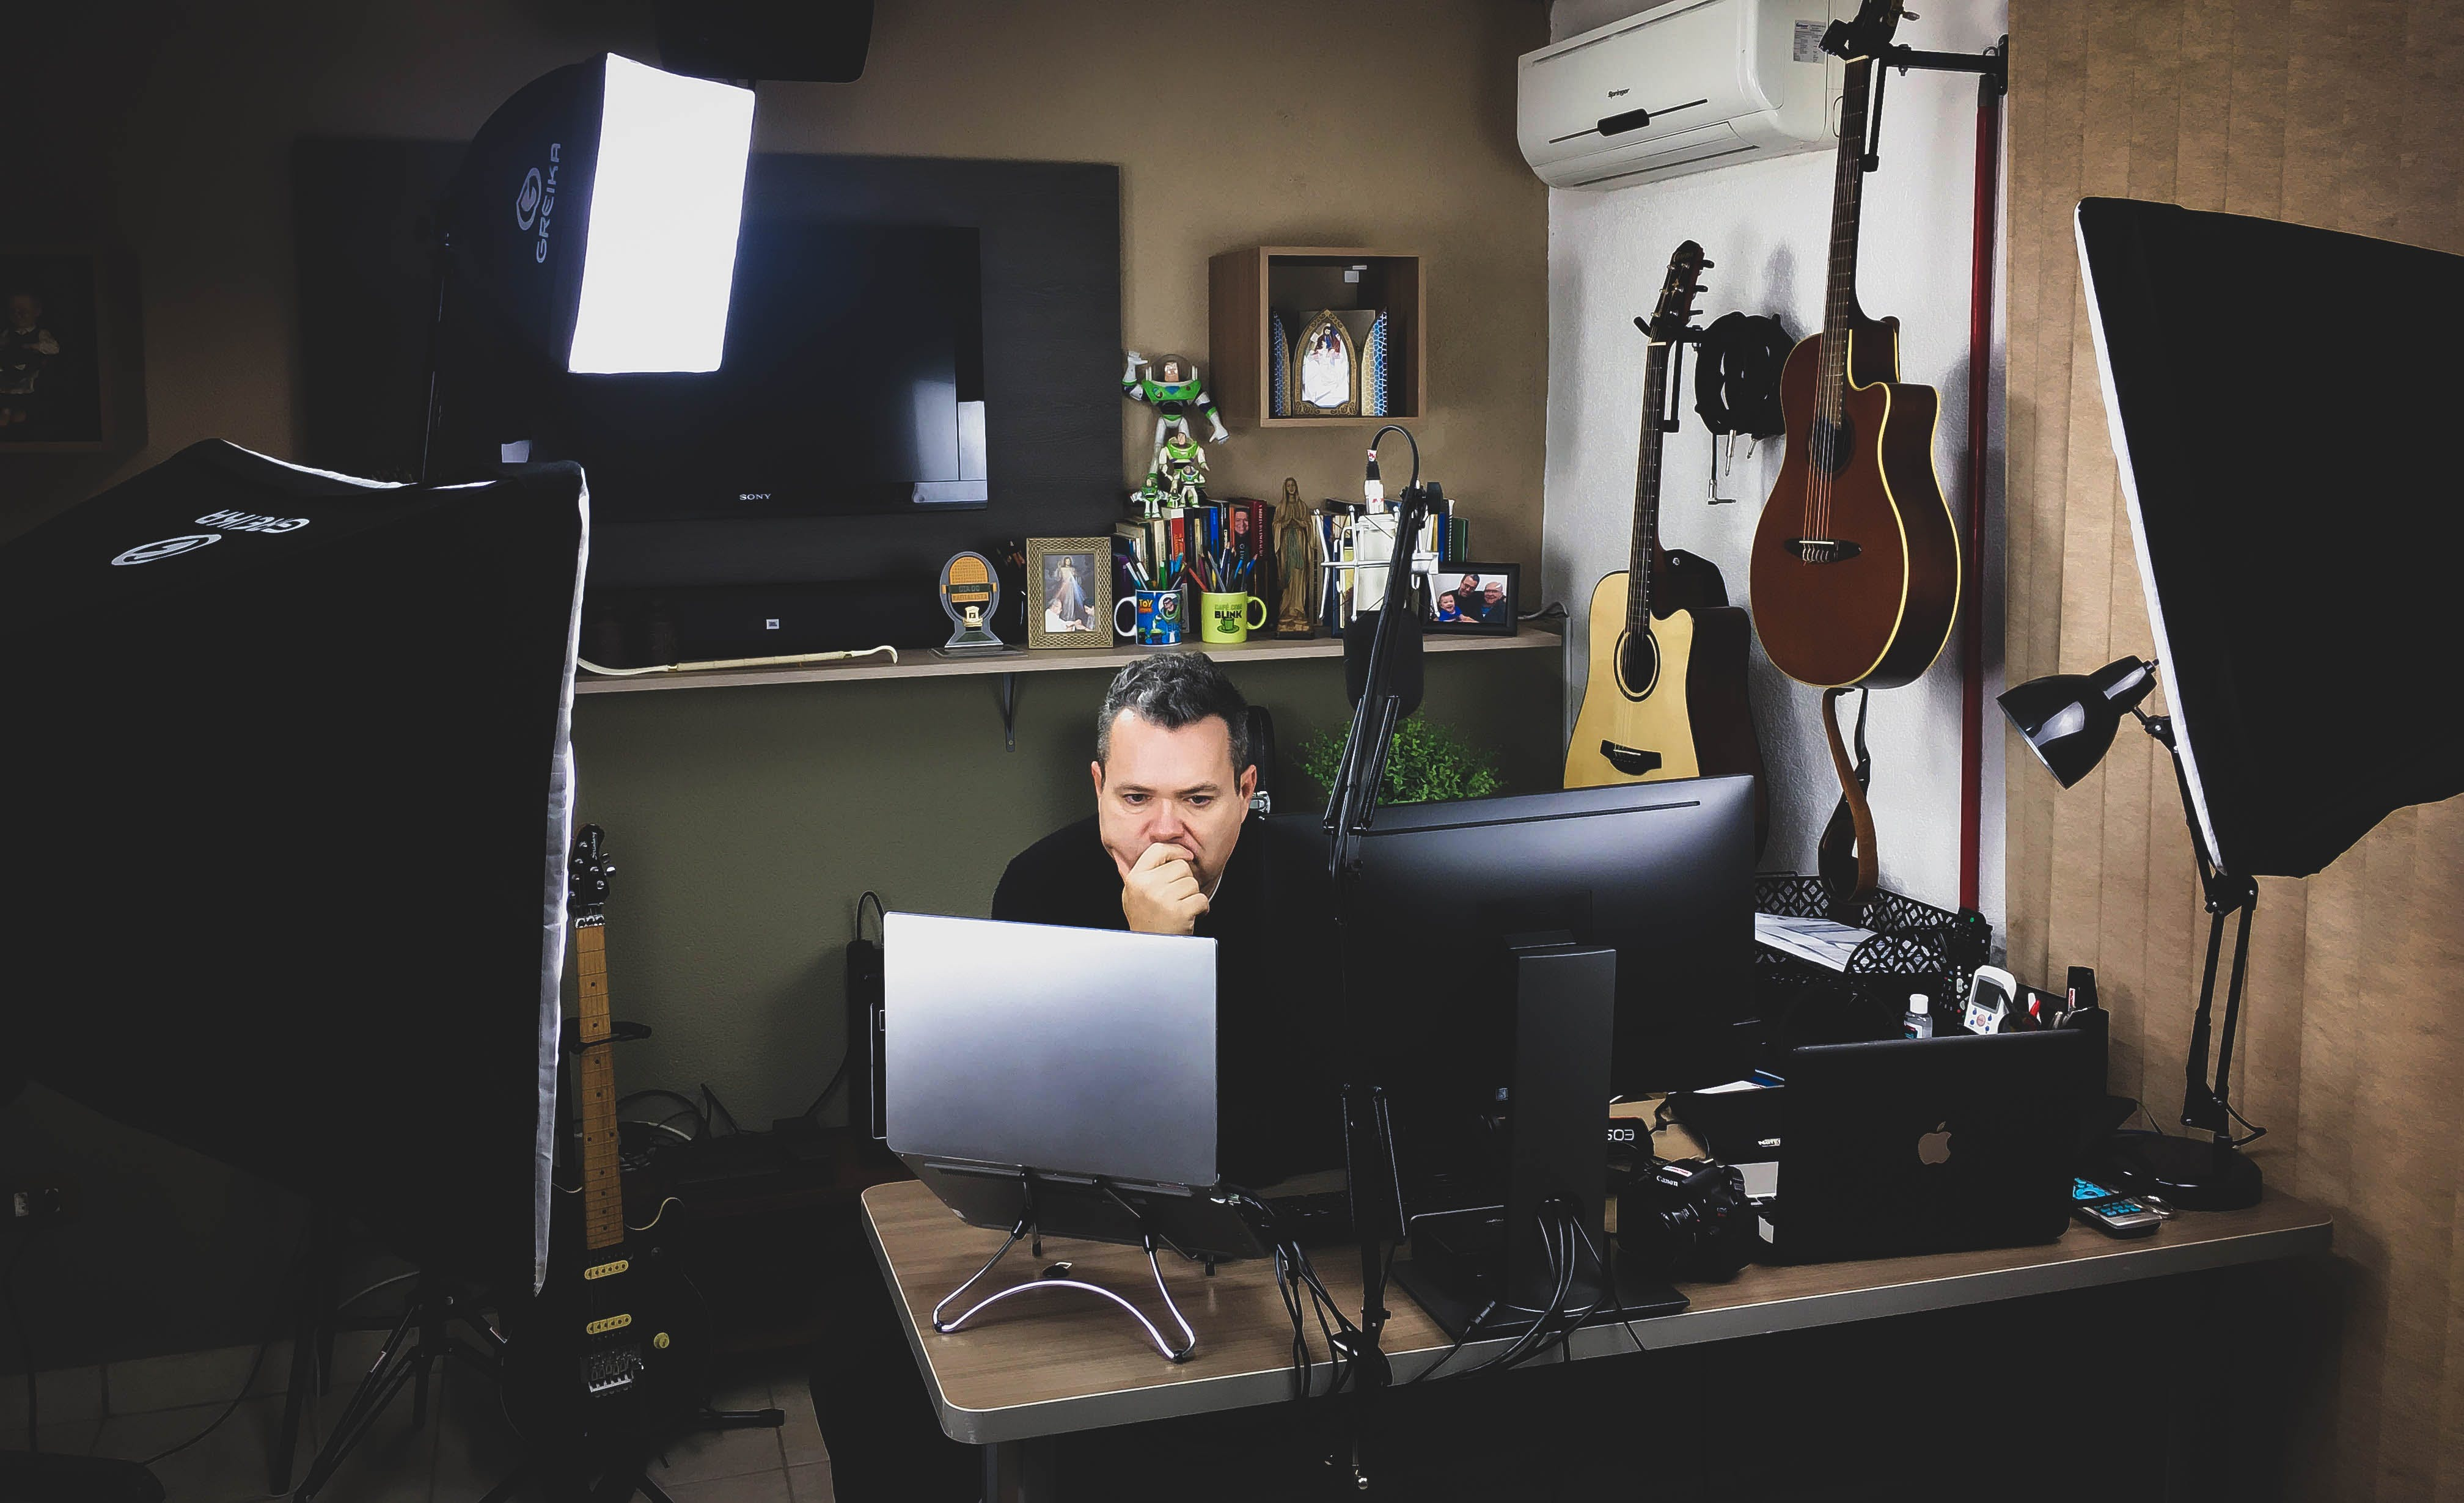 Man Siting in Front of Computer Monitor